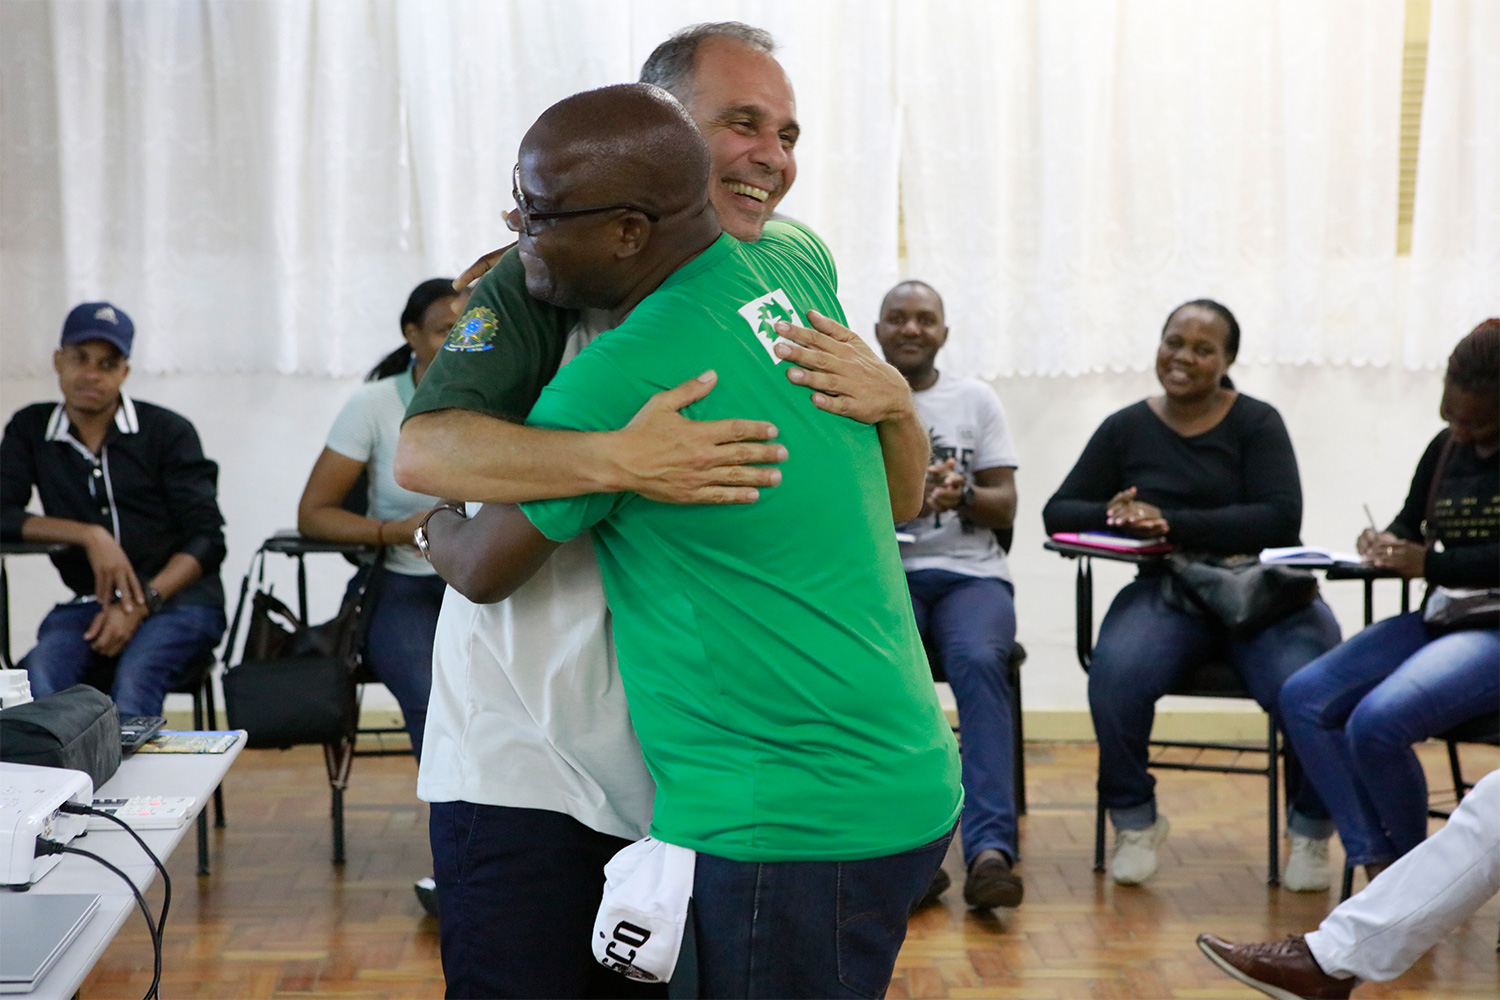 Mr. Leonardo Messias of ICMBio in Brazil and Mr. Joaquim Tembe of ADNAP in Mozambique embrace upon learning about each other's experiences in marine conservation.